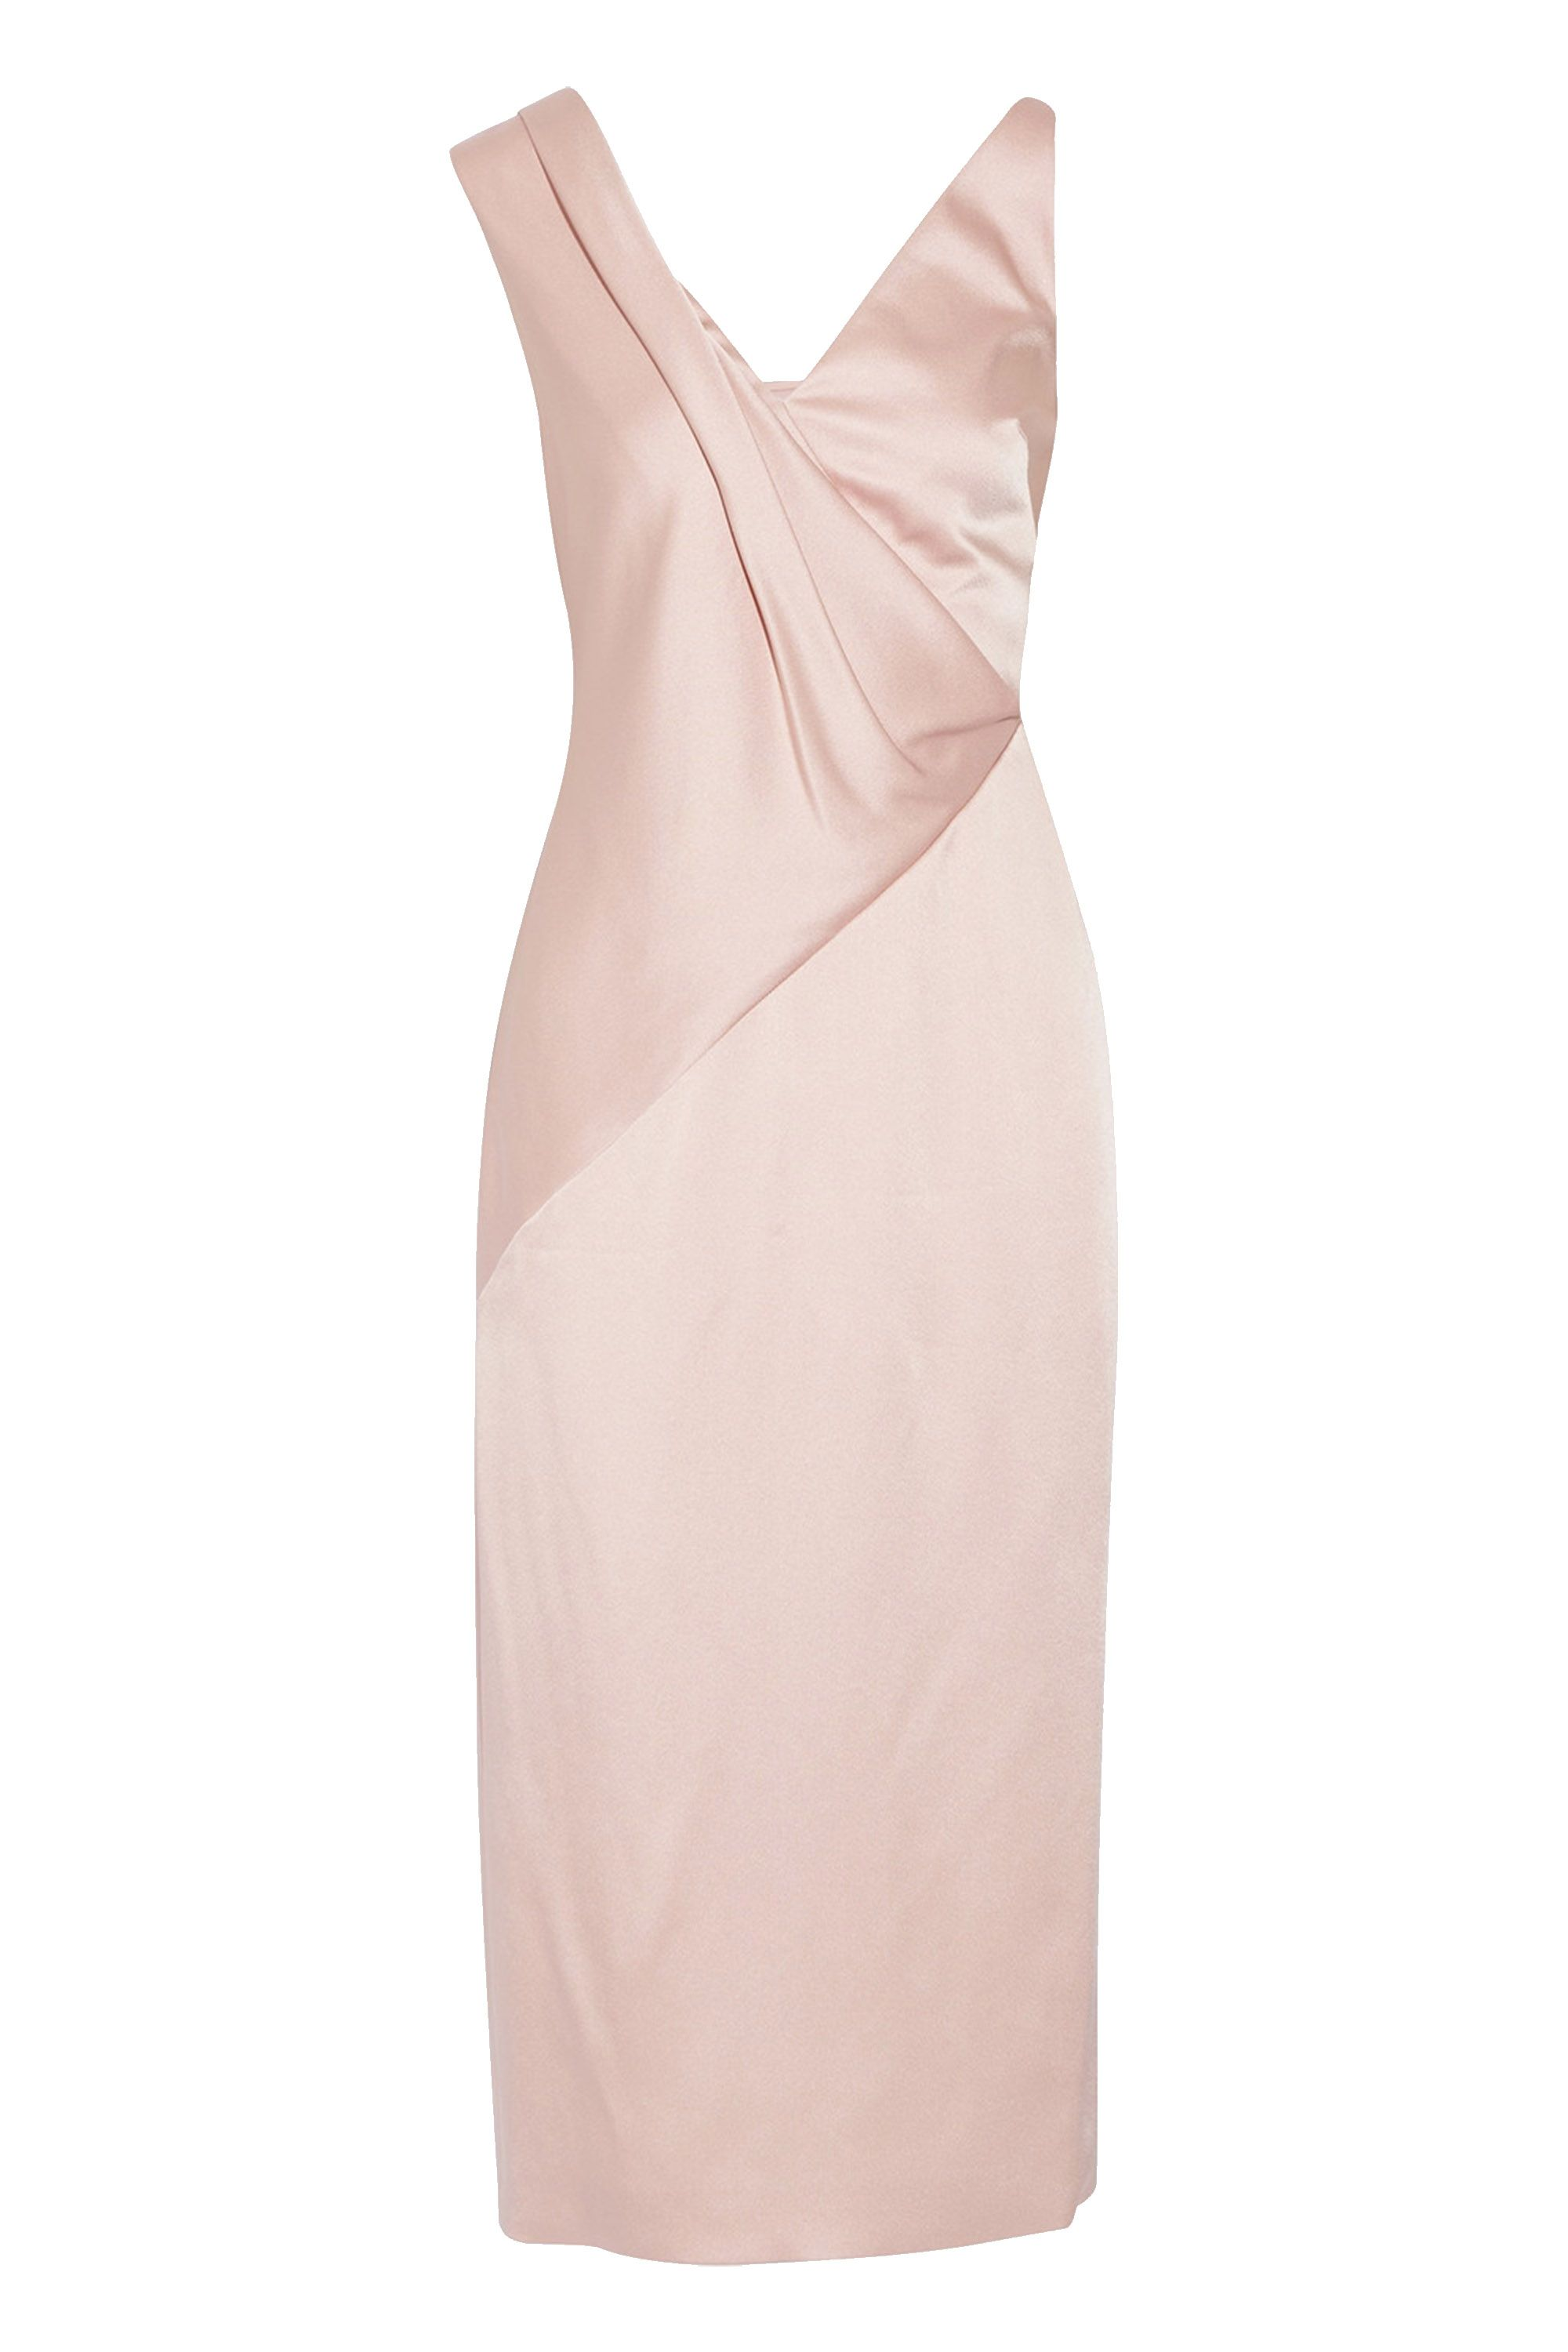 dresses to wear to spring weddings 2017 40 wedding guest dress ideas